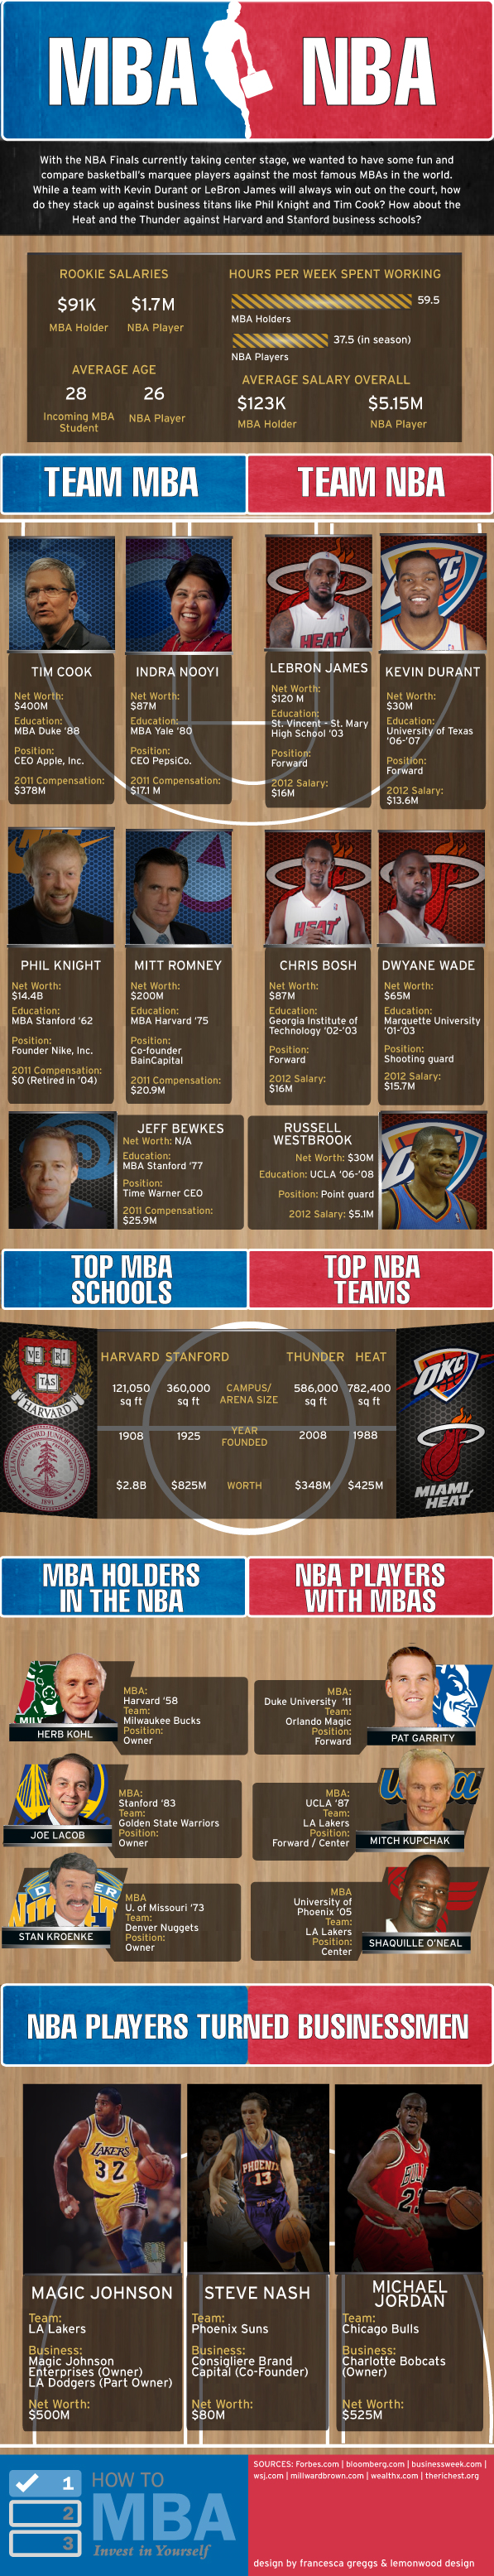 MBA vs. NBA